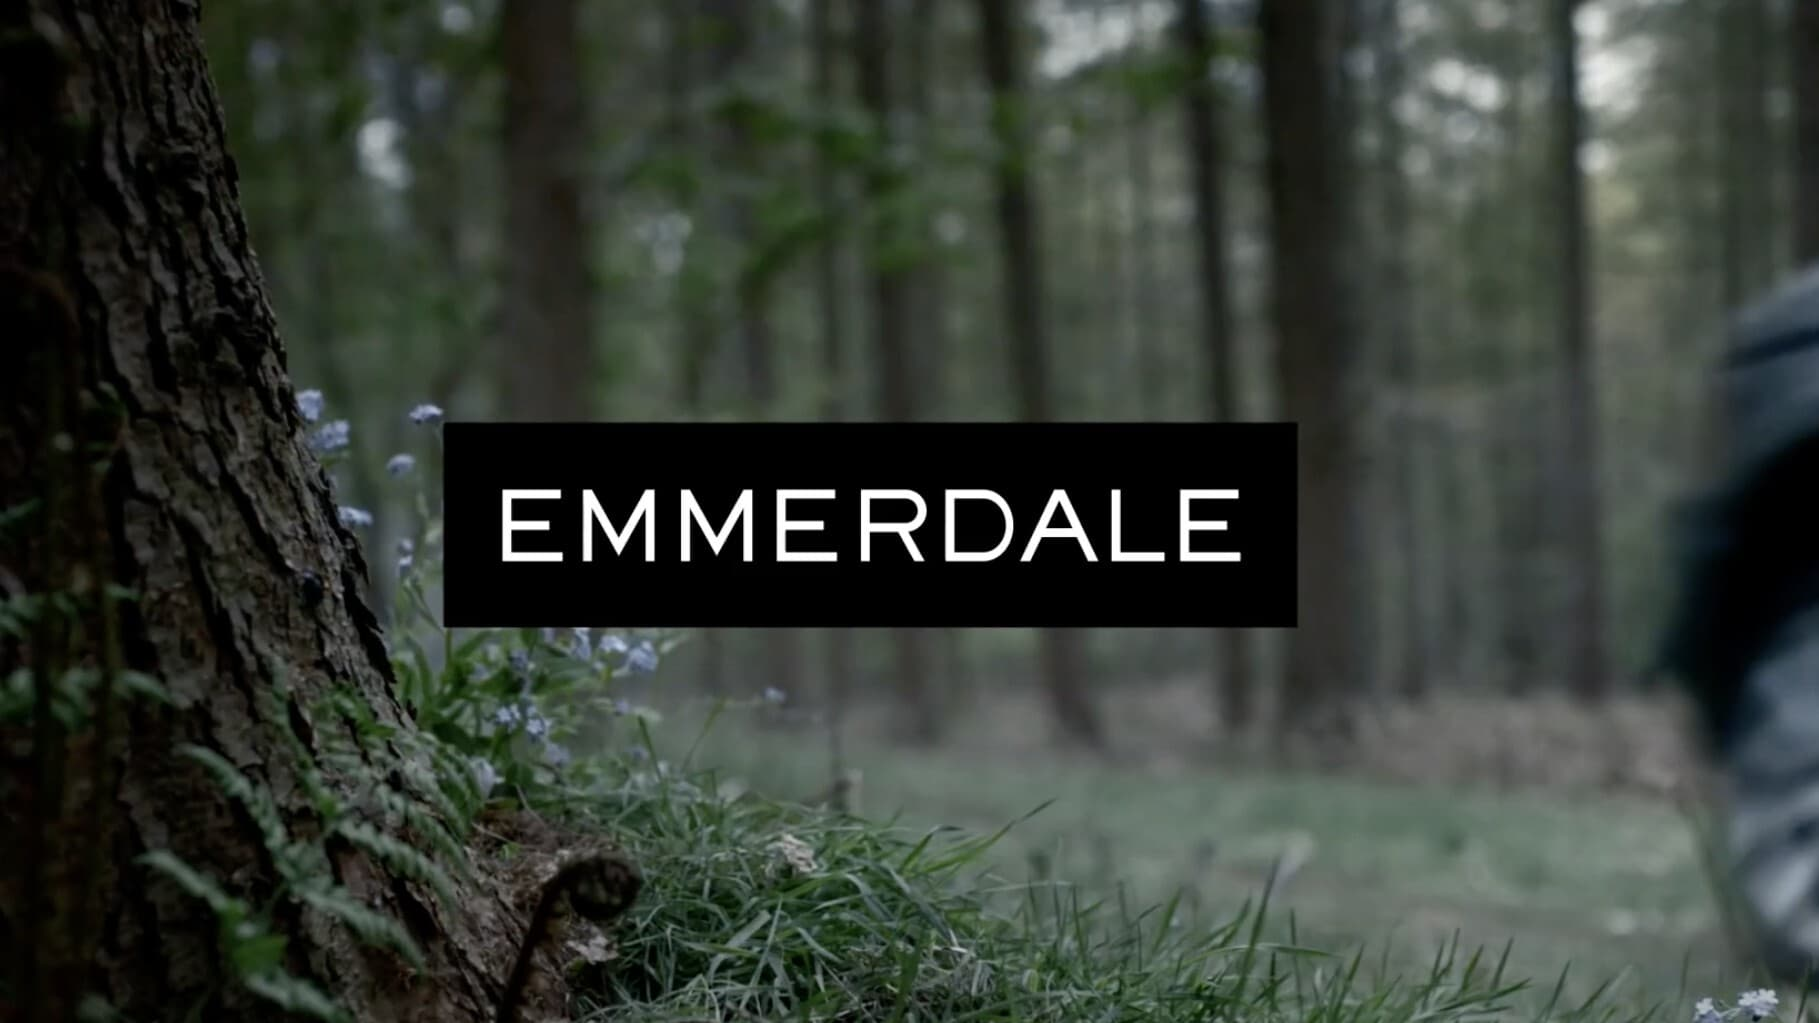 Emmerdale - Season 50 Episode 94 : Friday 23 April 2021